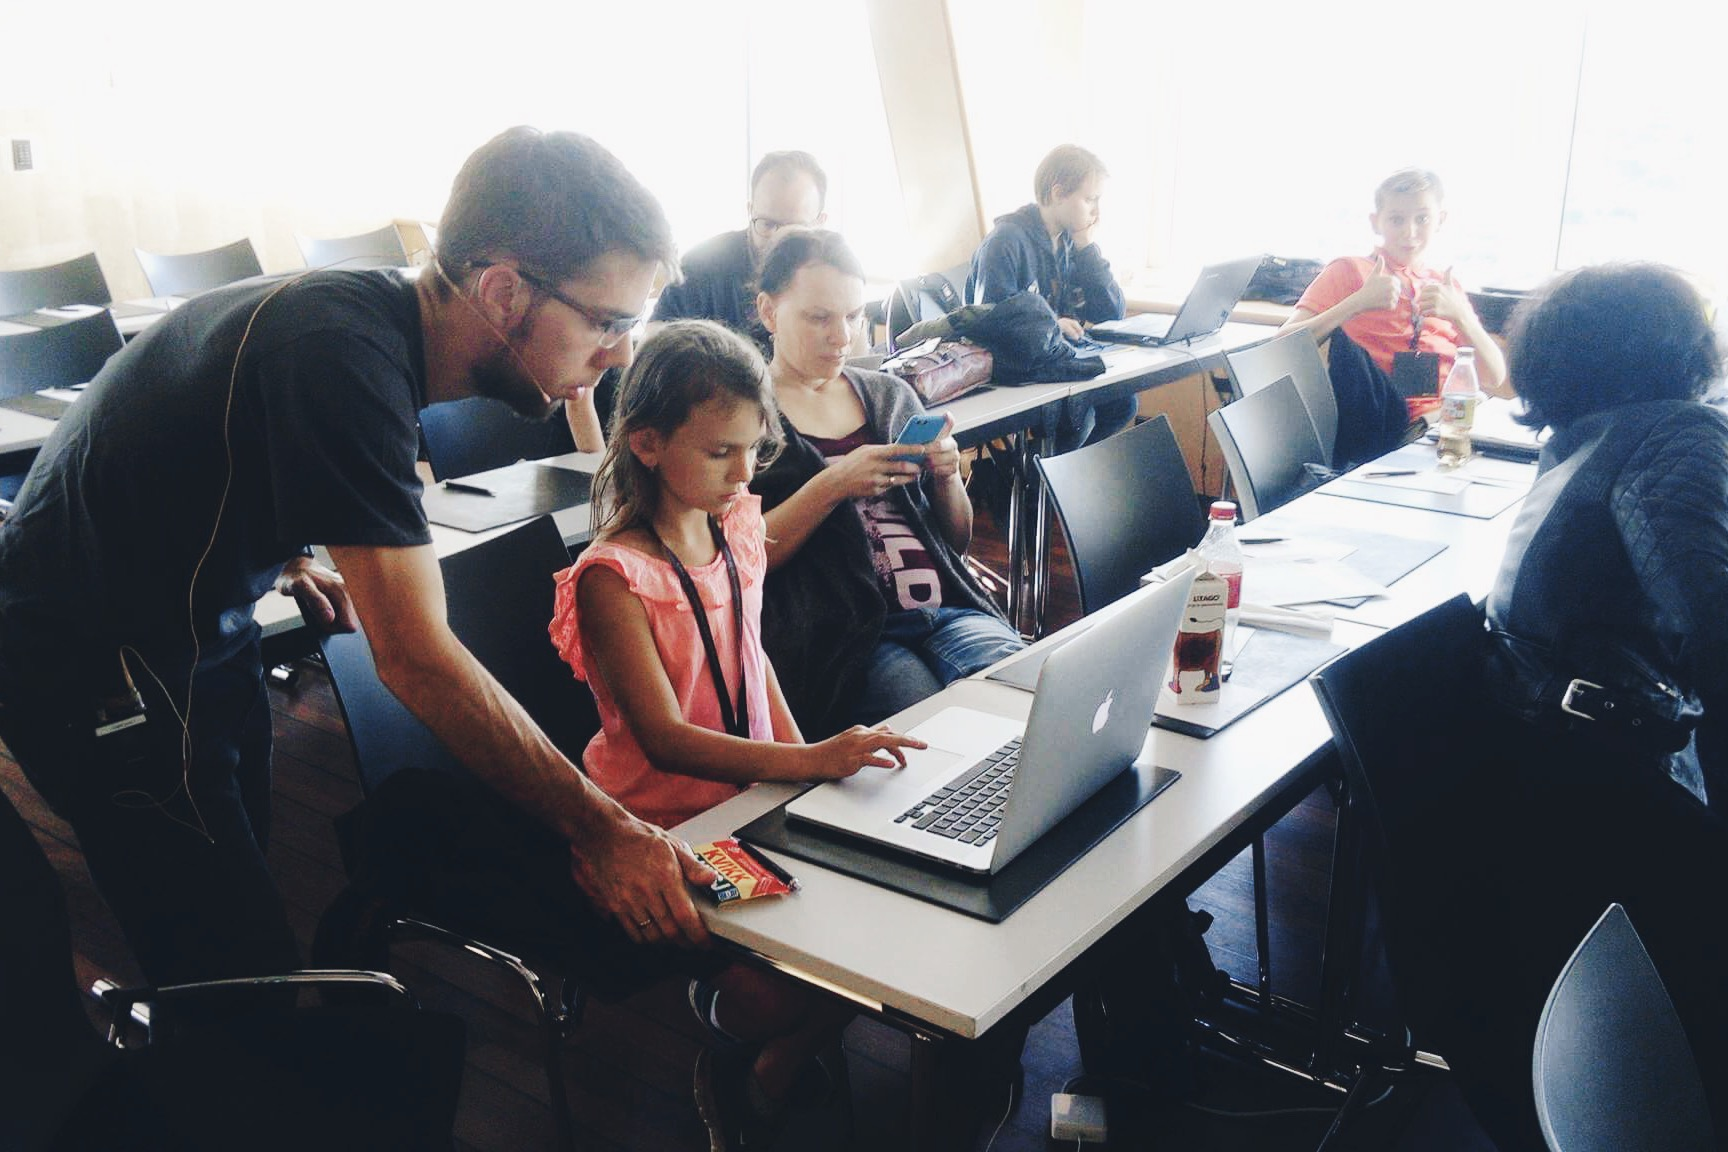 Vivaldi designer Atle Mo teaches kids 3D modelling at NDC Oslo